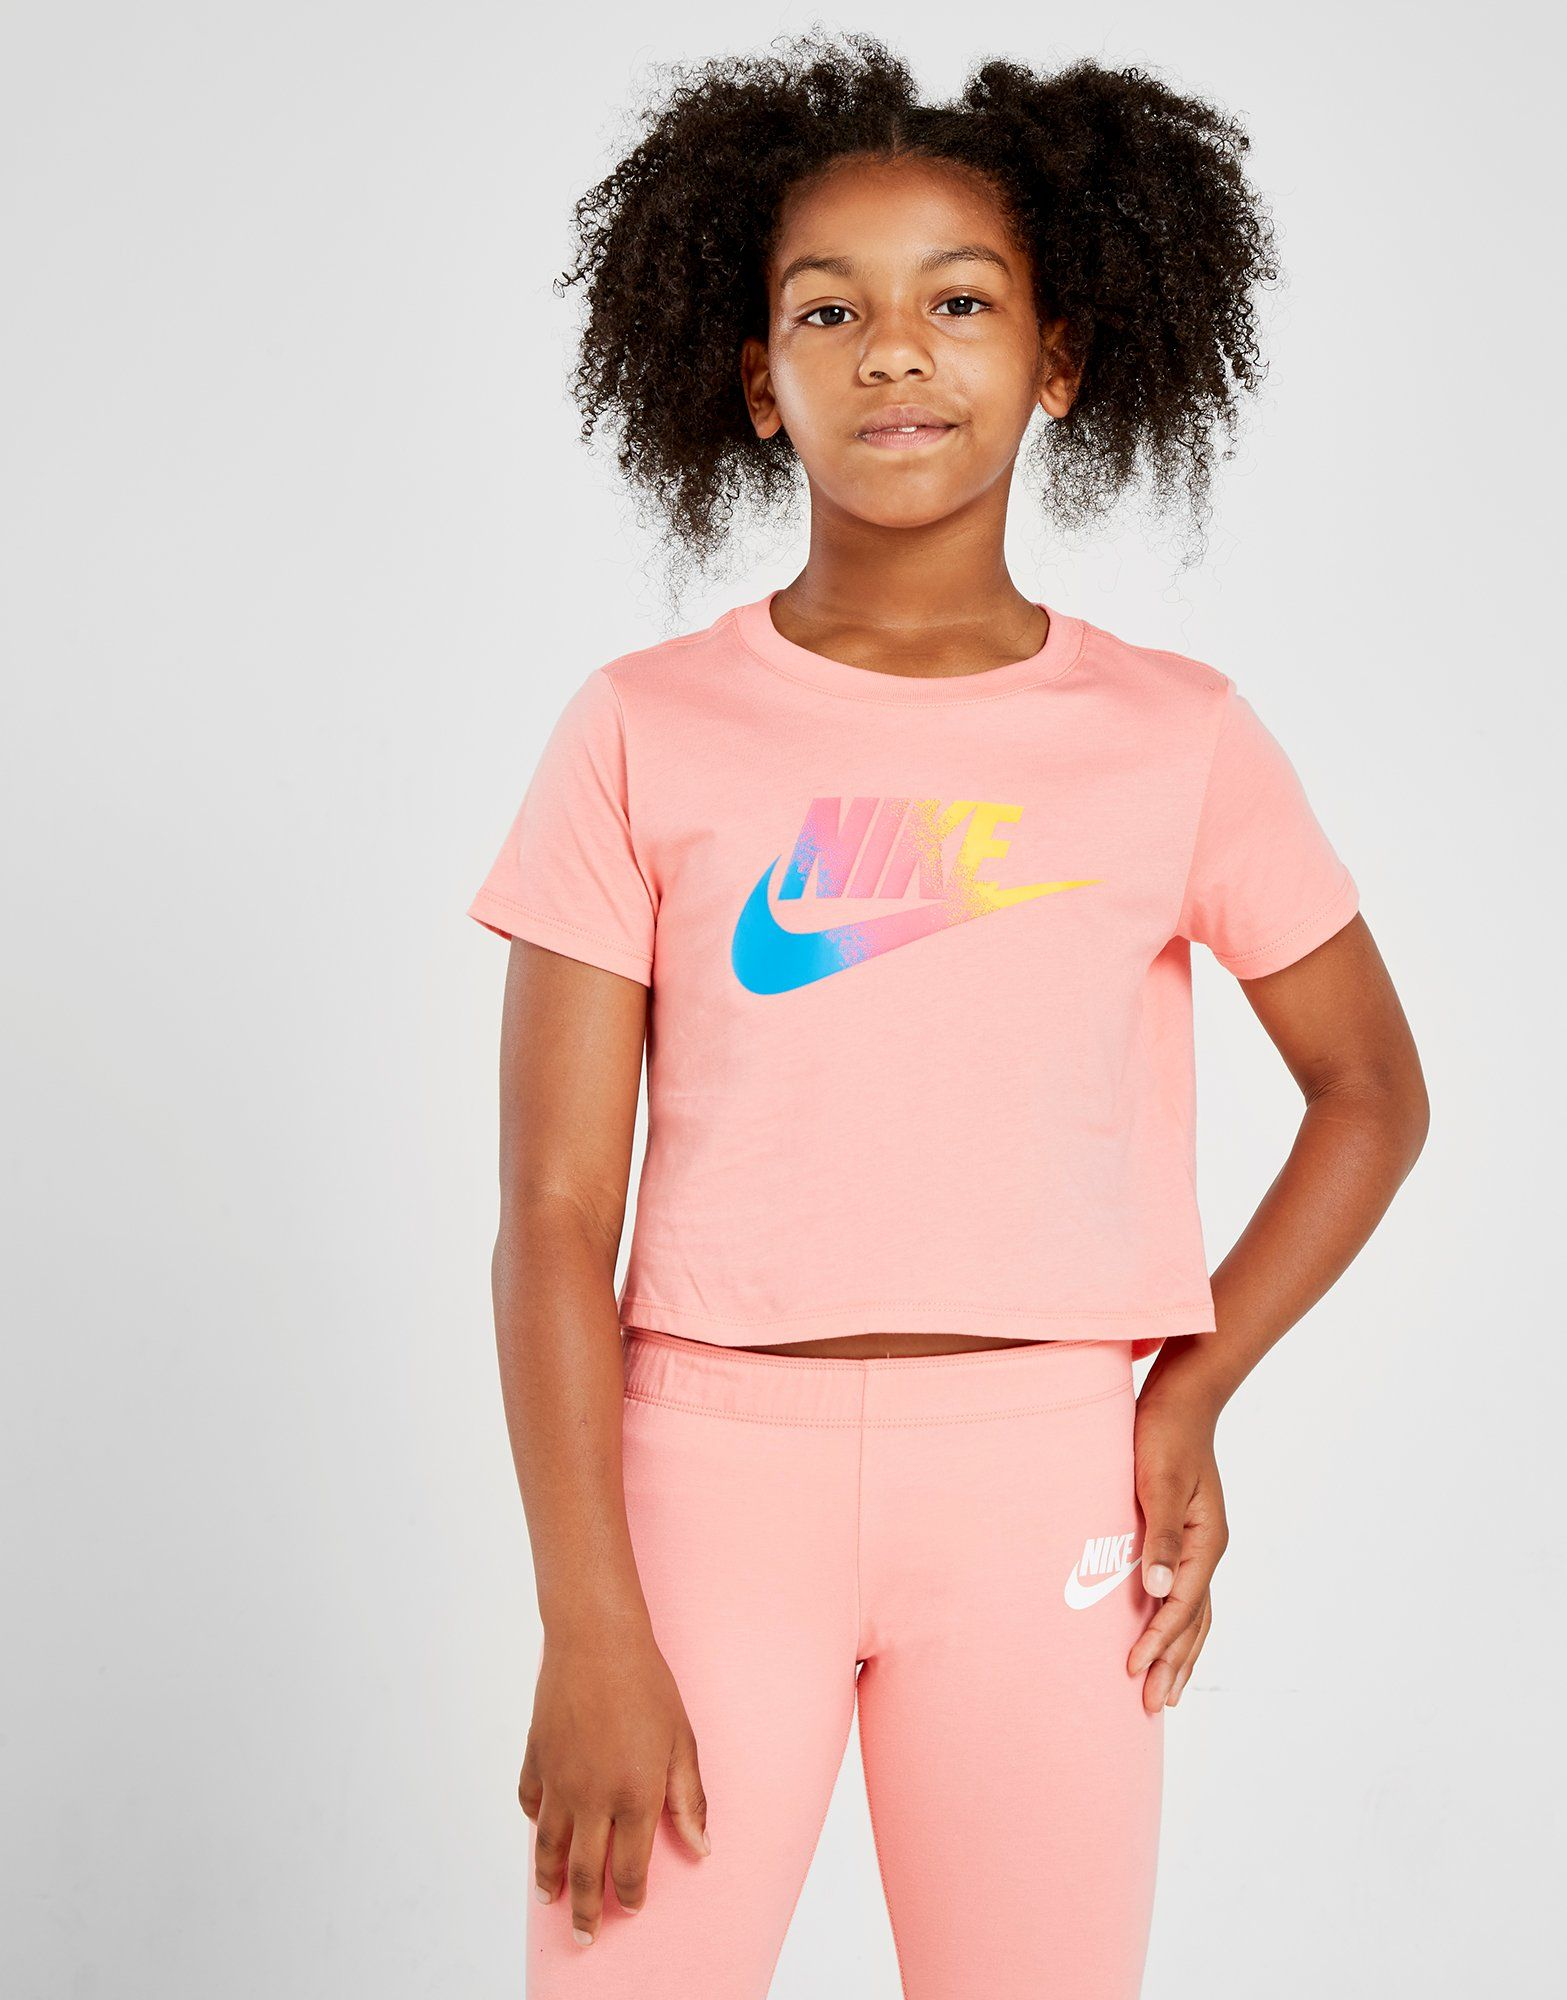 Nike Girls' Futura Crop Top Junior by Nike